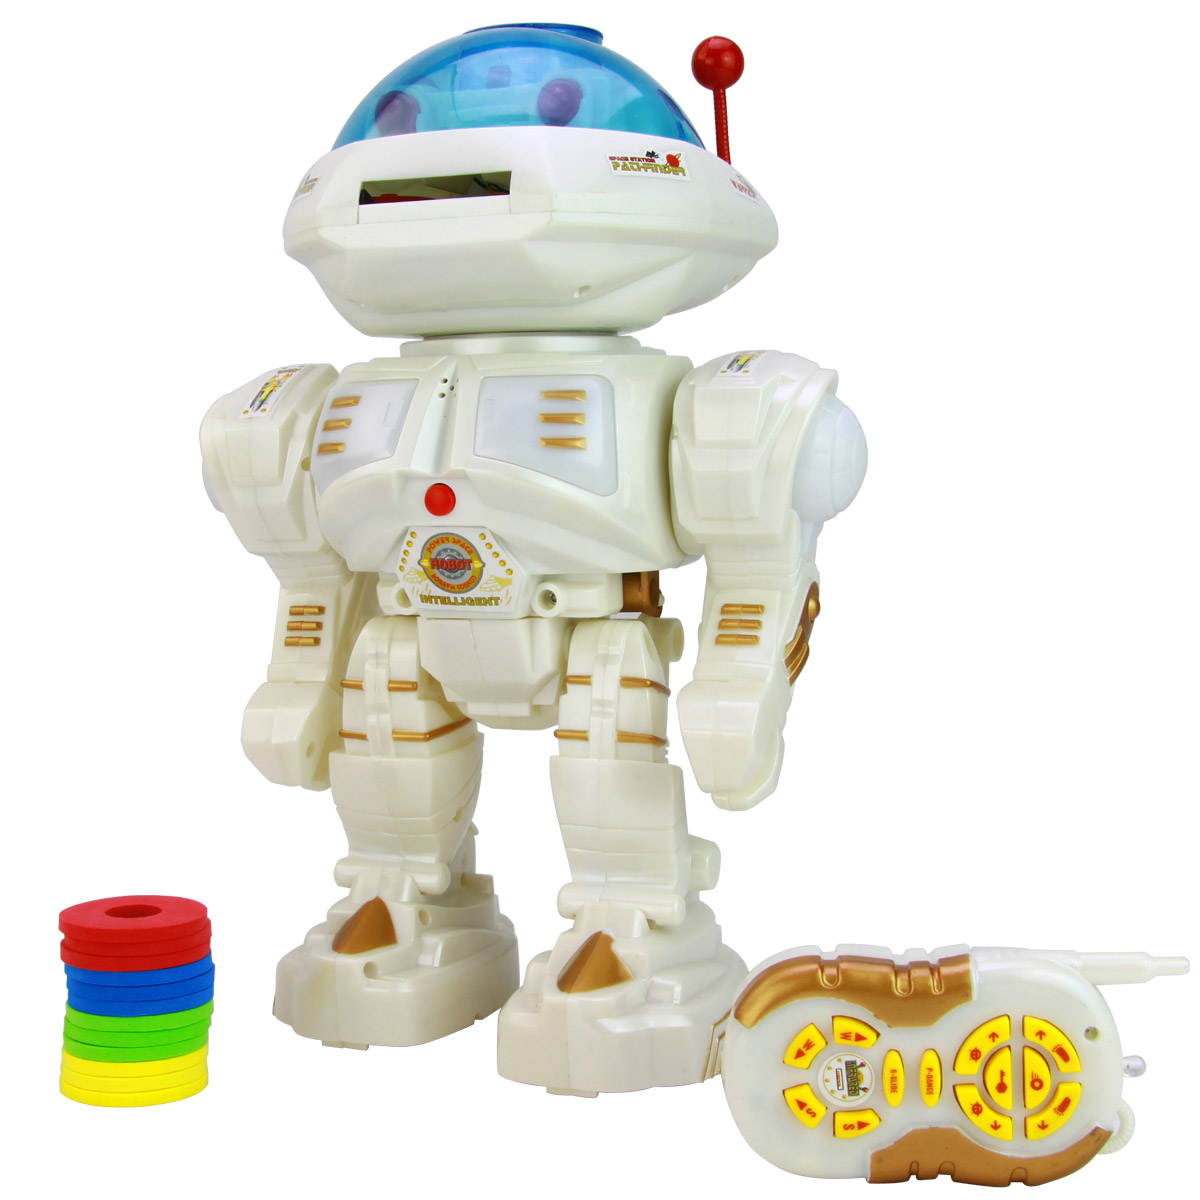 Remote control intelligent robot story telling voice space robot toy(China (Mainland))